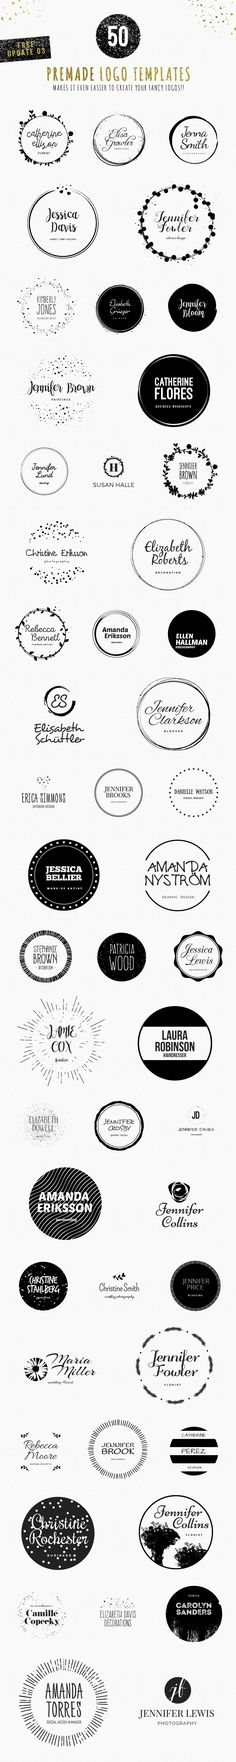 Say hello to women's first aid kit to glamorous logos!! :) Normally this kind of…